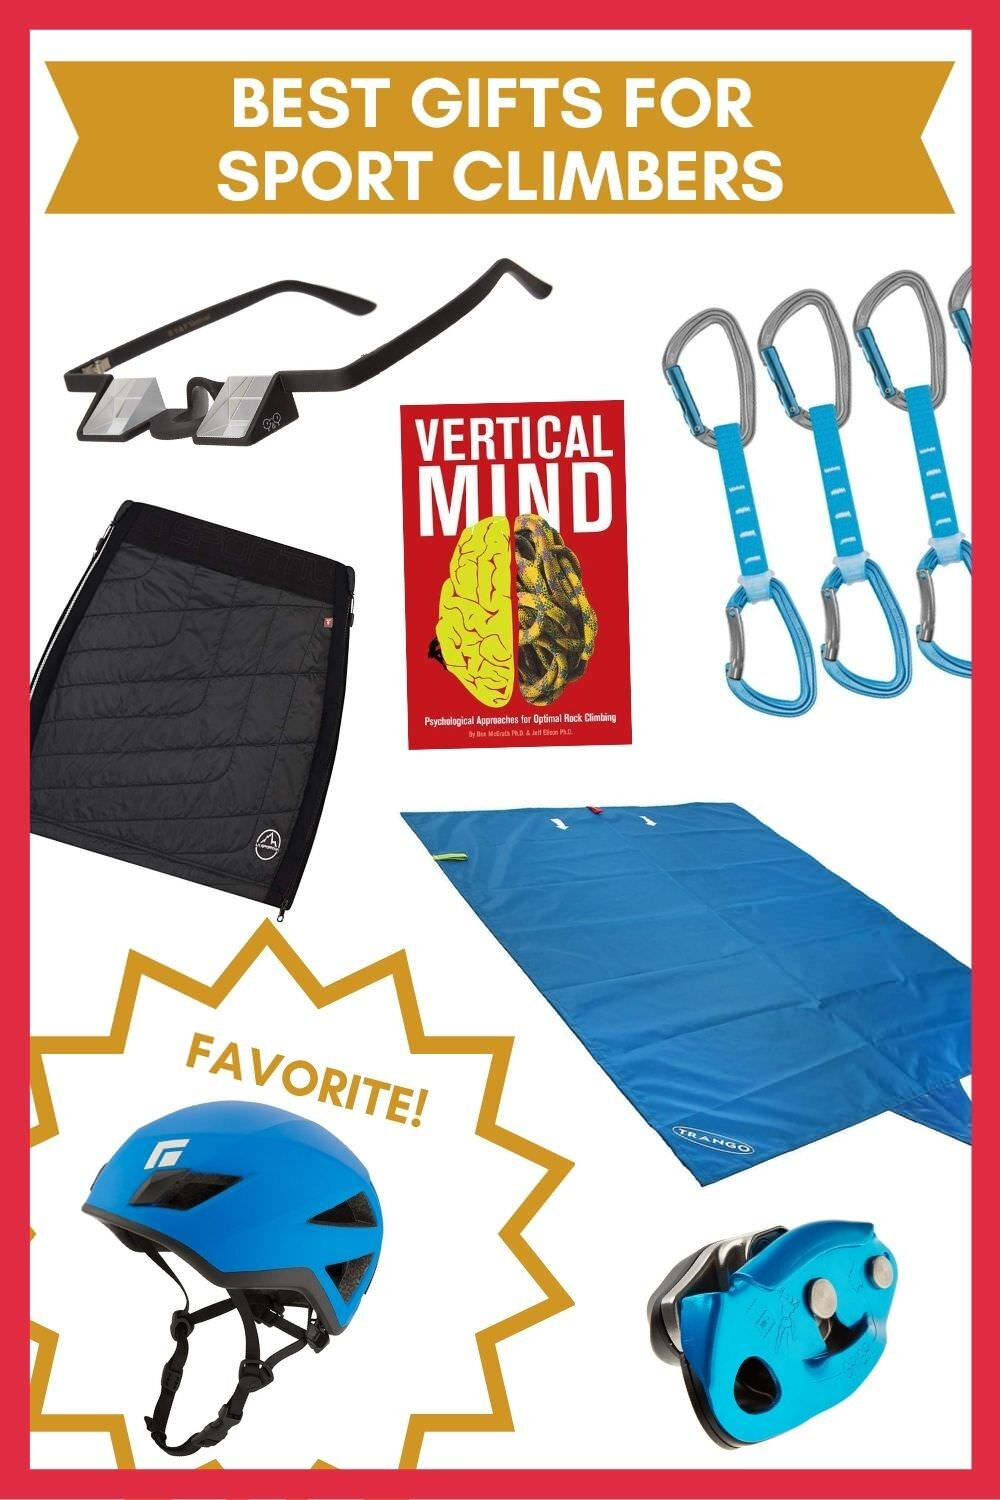 Awesome gift ideas for sport climbers!